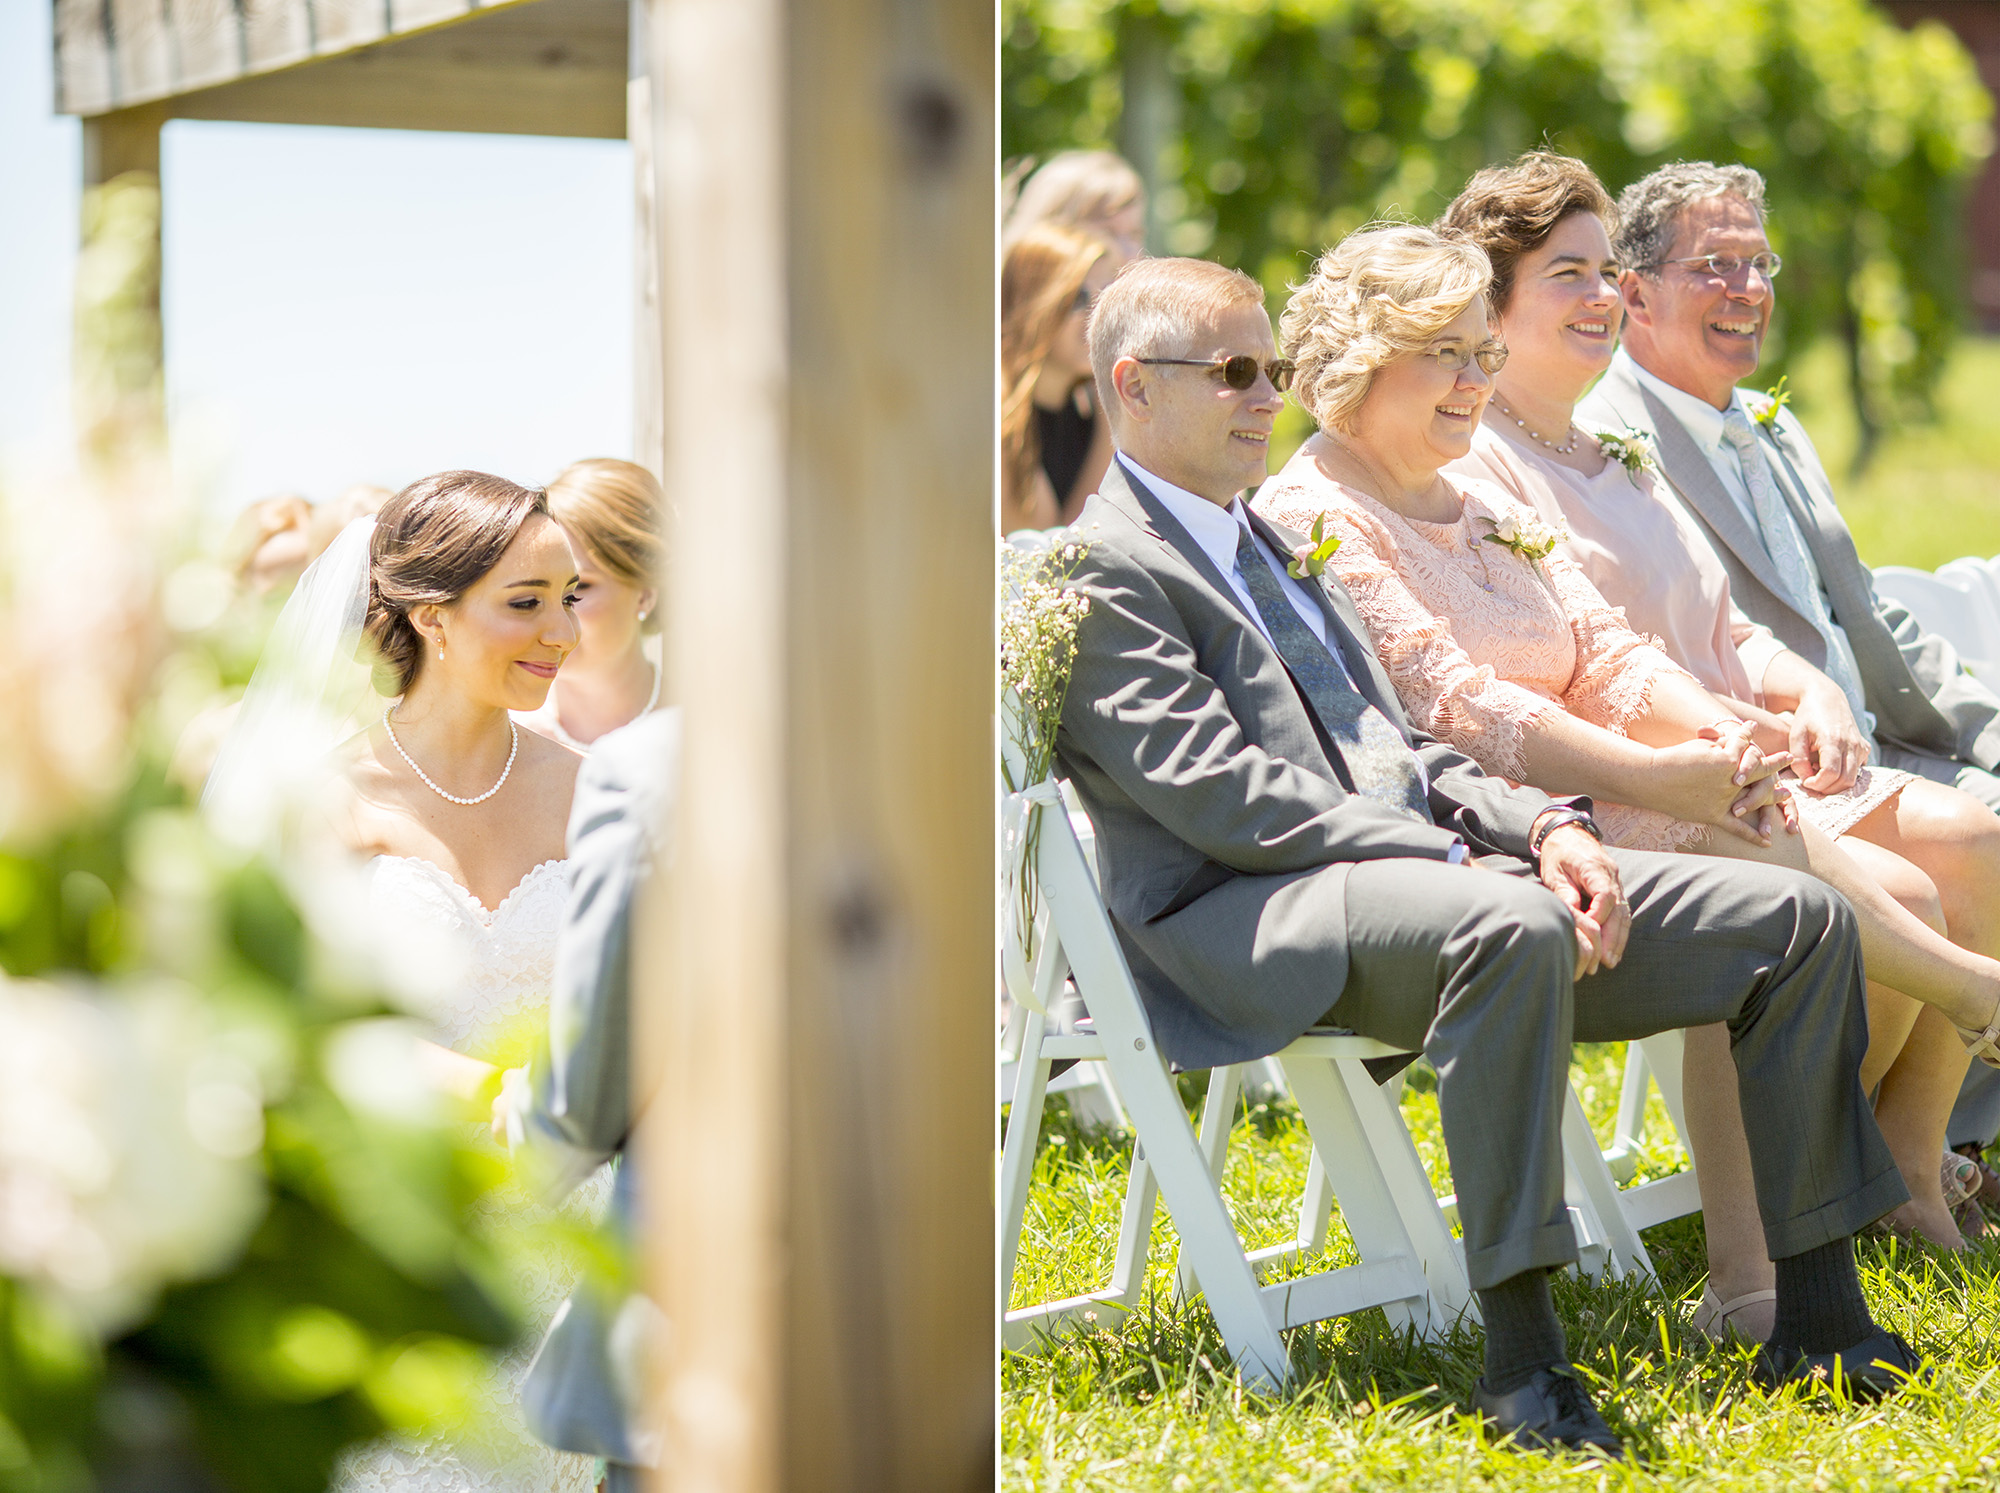 Seriously_Sabrina_Photography_Lexington_Kentucky_Talon_Winery_Wedding_Kjellsen69.jpg